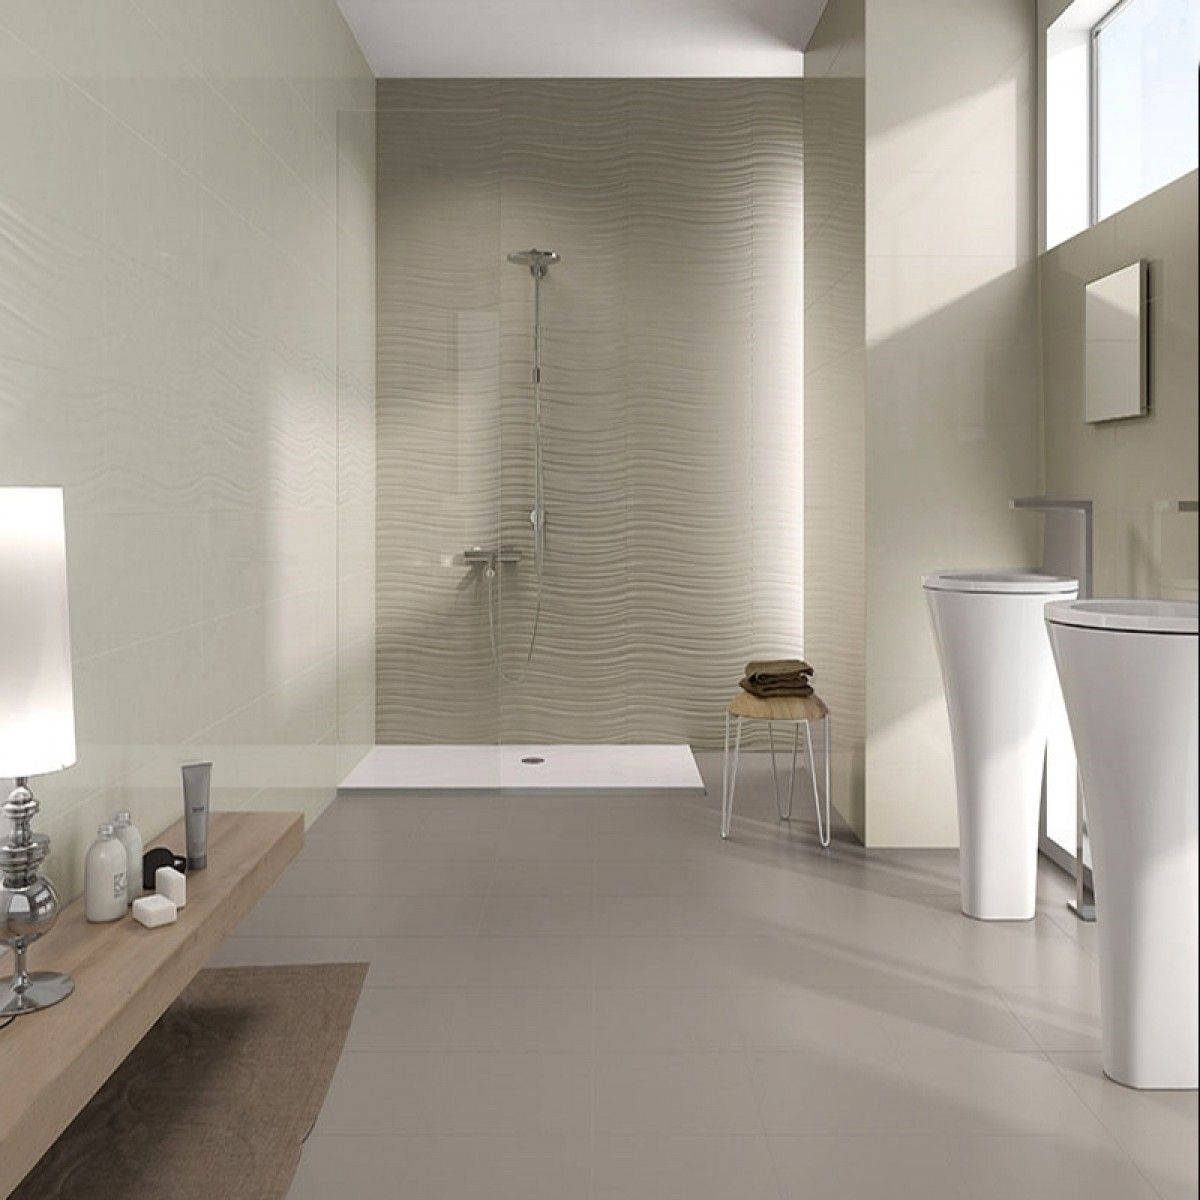 Decorative Wall Tiles Bathroom Hampton Topoe Waves  600Mm X 250Mm  Decorative Wall Tiles